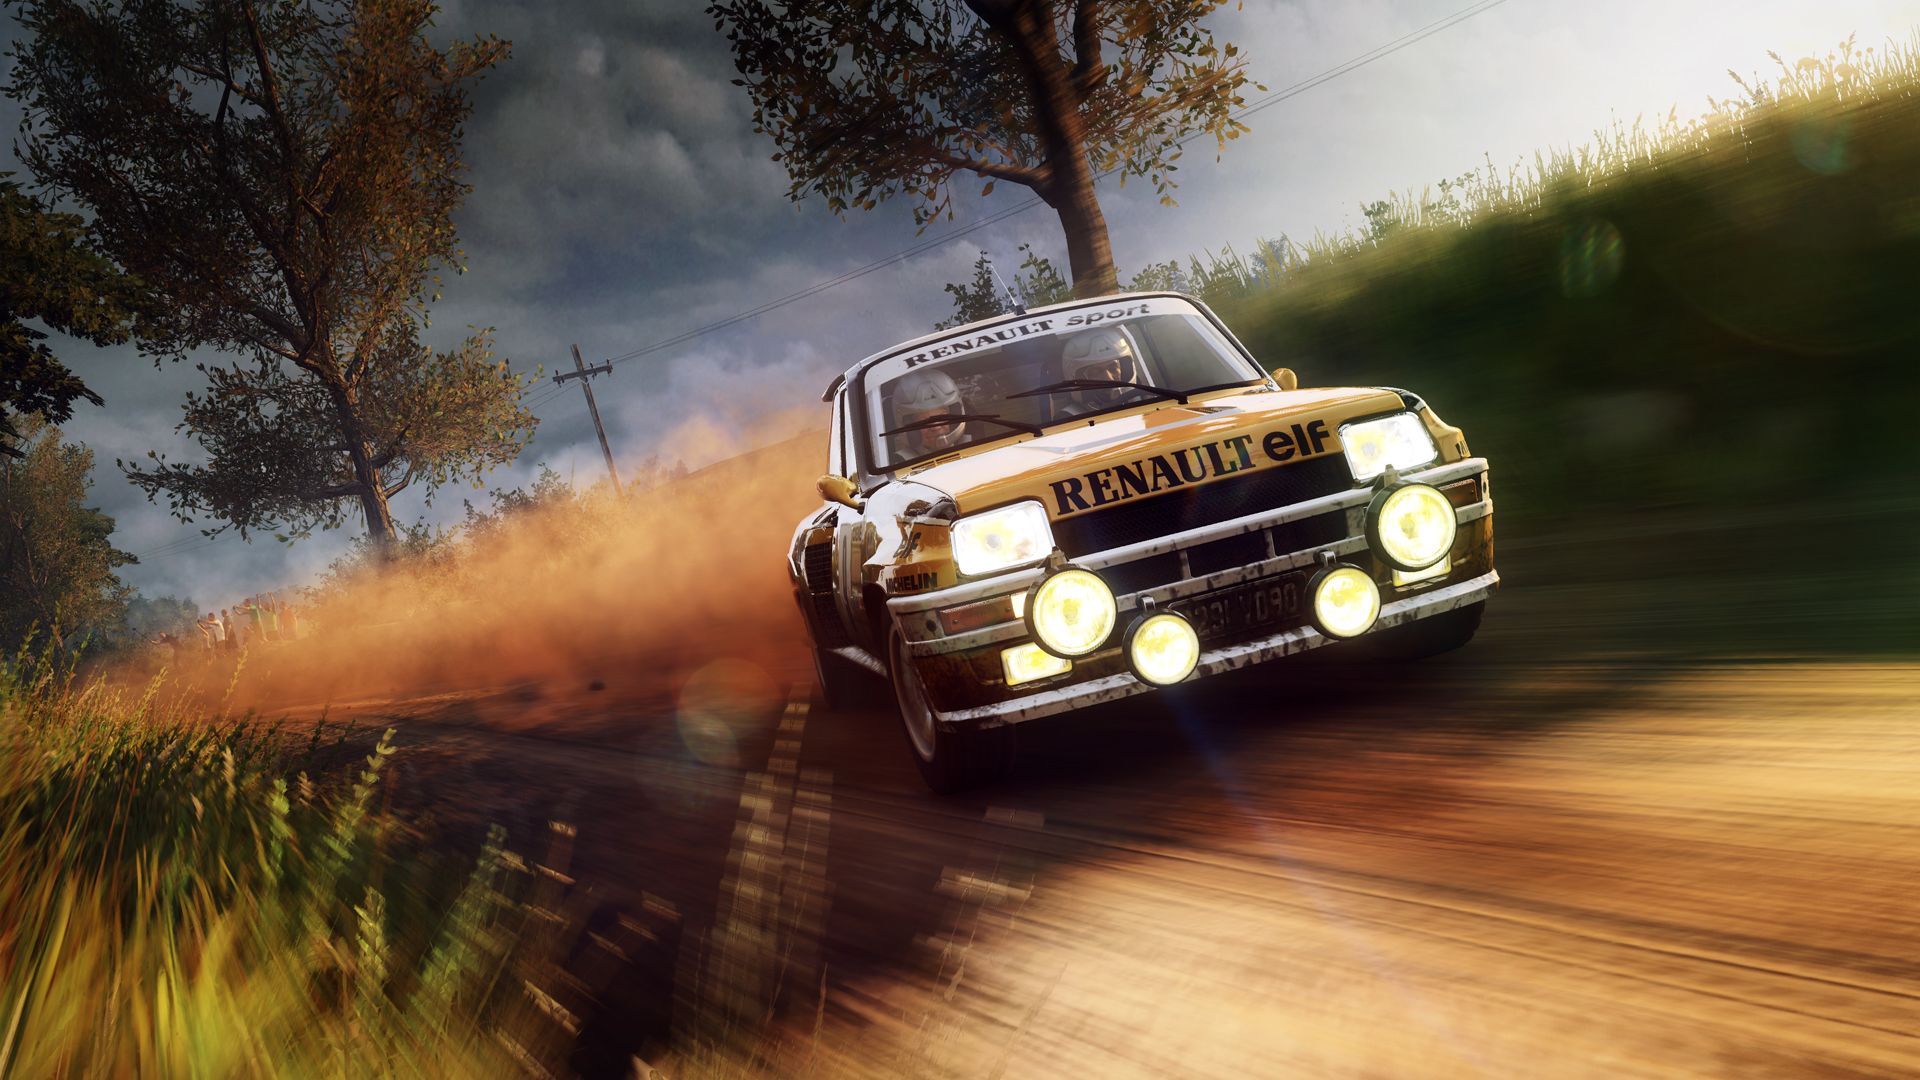 Media asset in full size related to 3dfxzone.it news item entitled as follows: Codemasters pubblica il trailer Rally Through the Ages di DiRT Rally 2.0   Image Name: news29100_DiRT-Rally-2_1.jpg